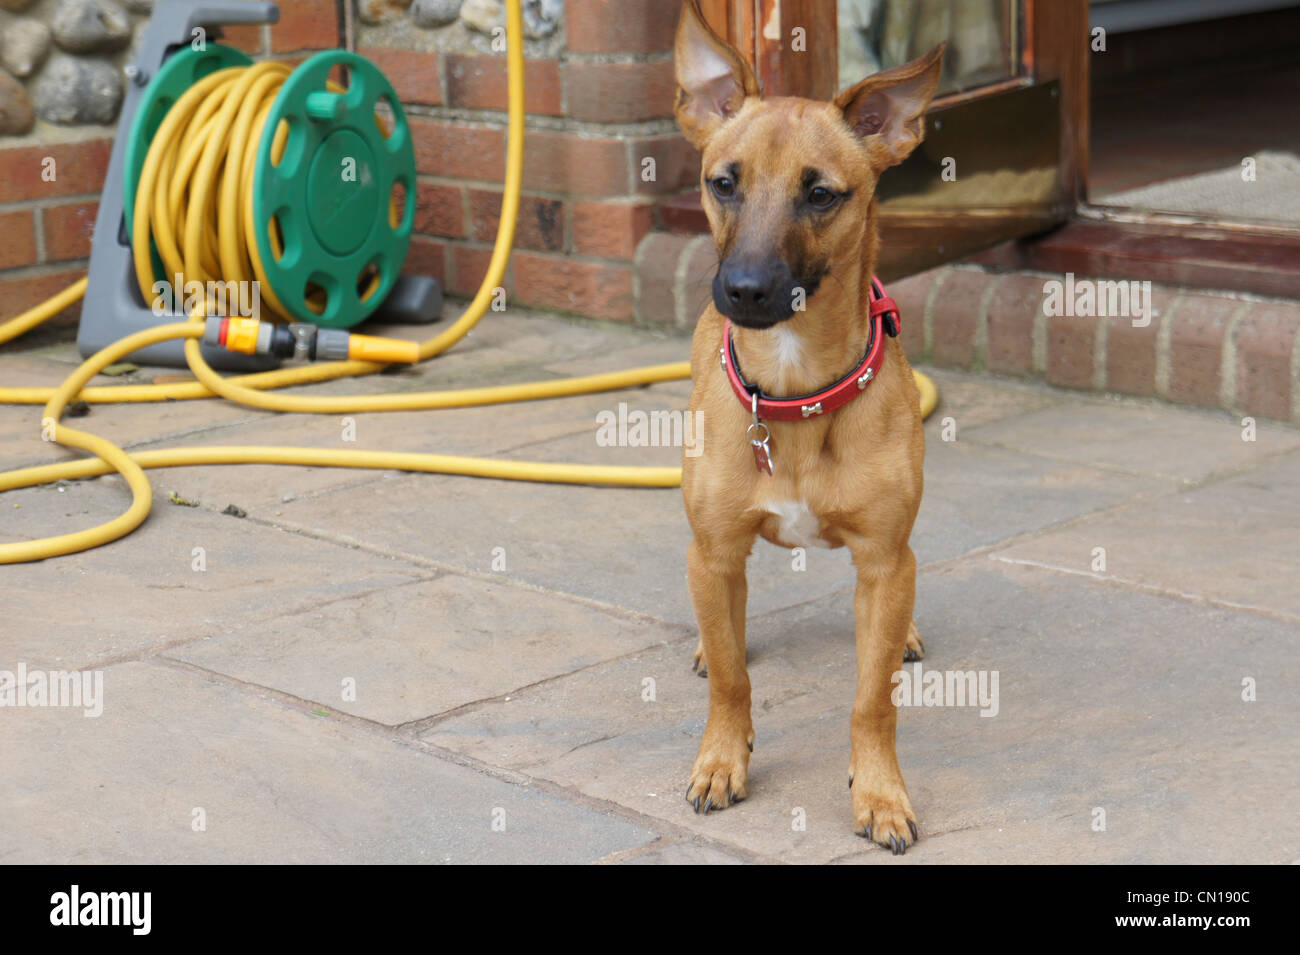 SONY DSC, terrier chihuahua mix puppy outside on patio - Stock Image